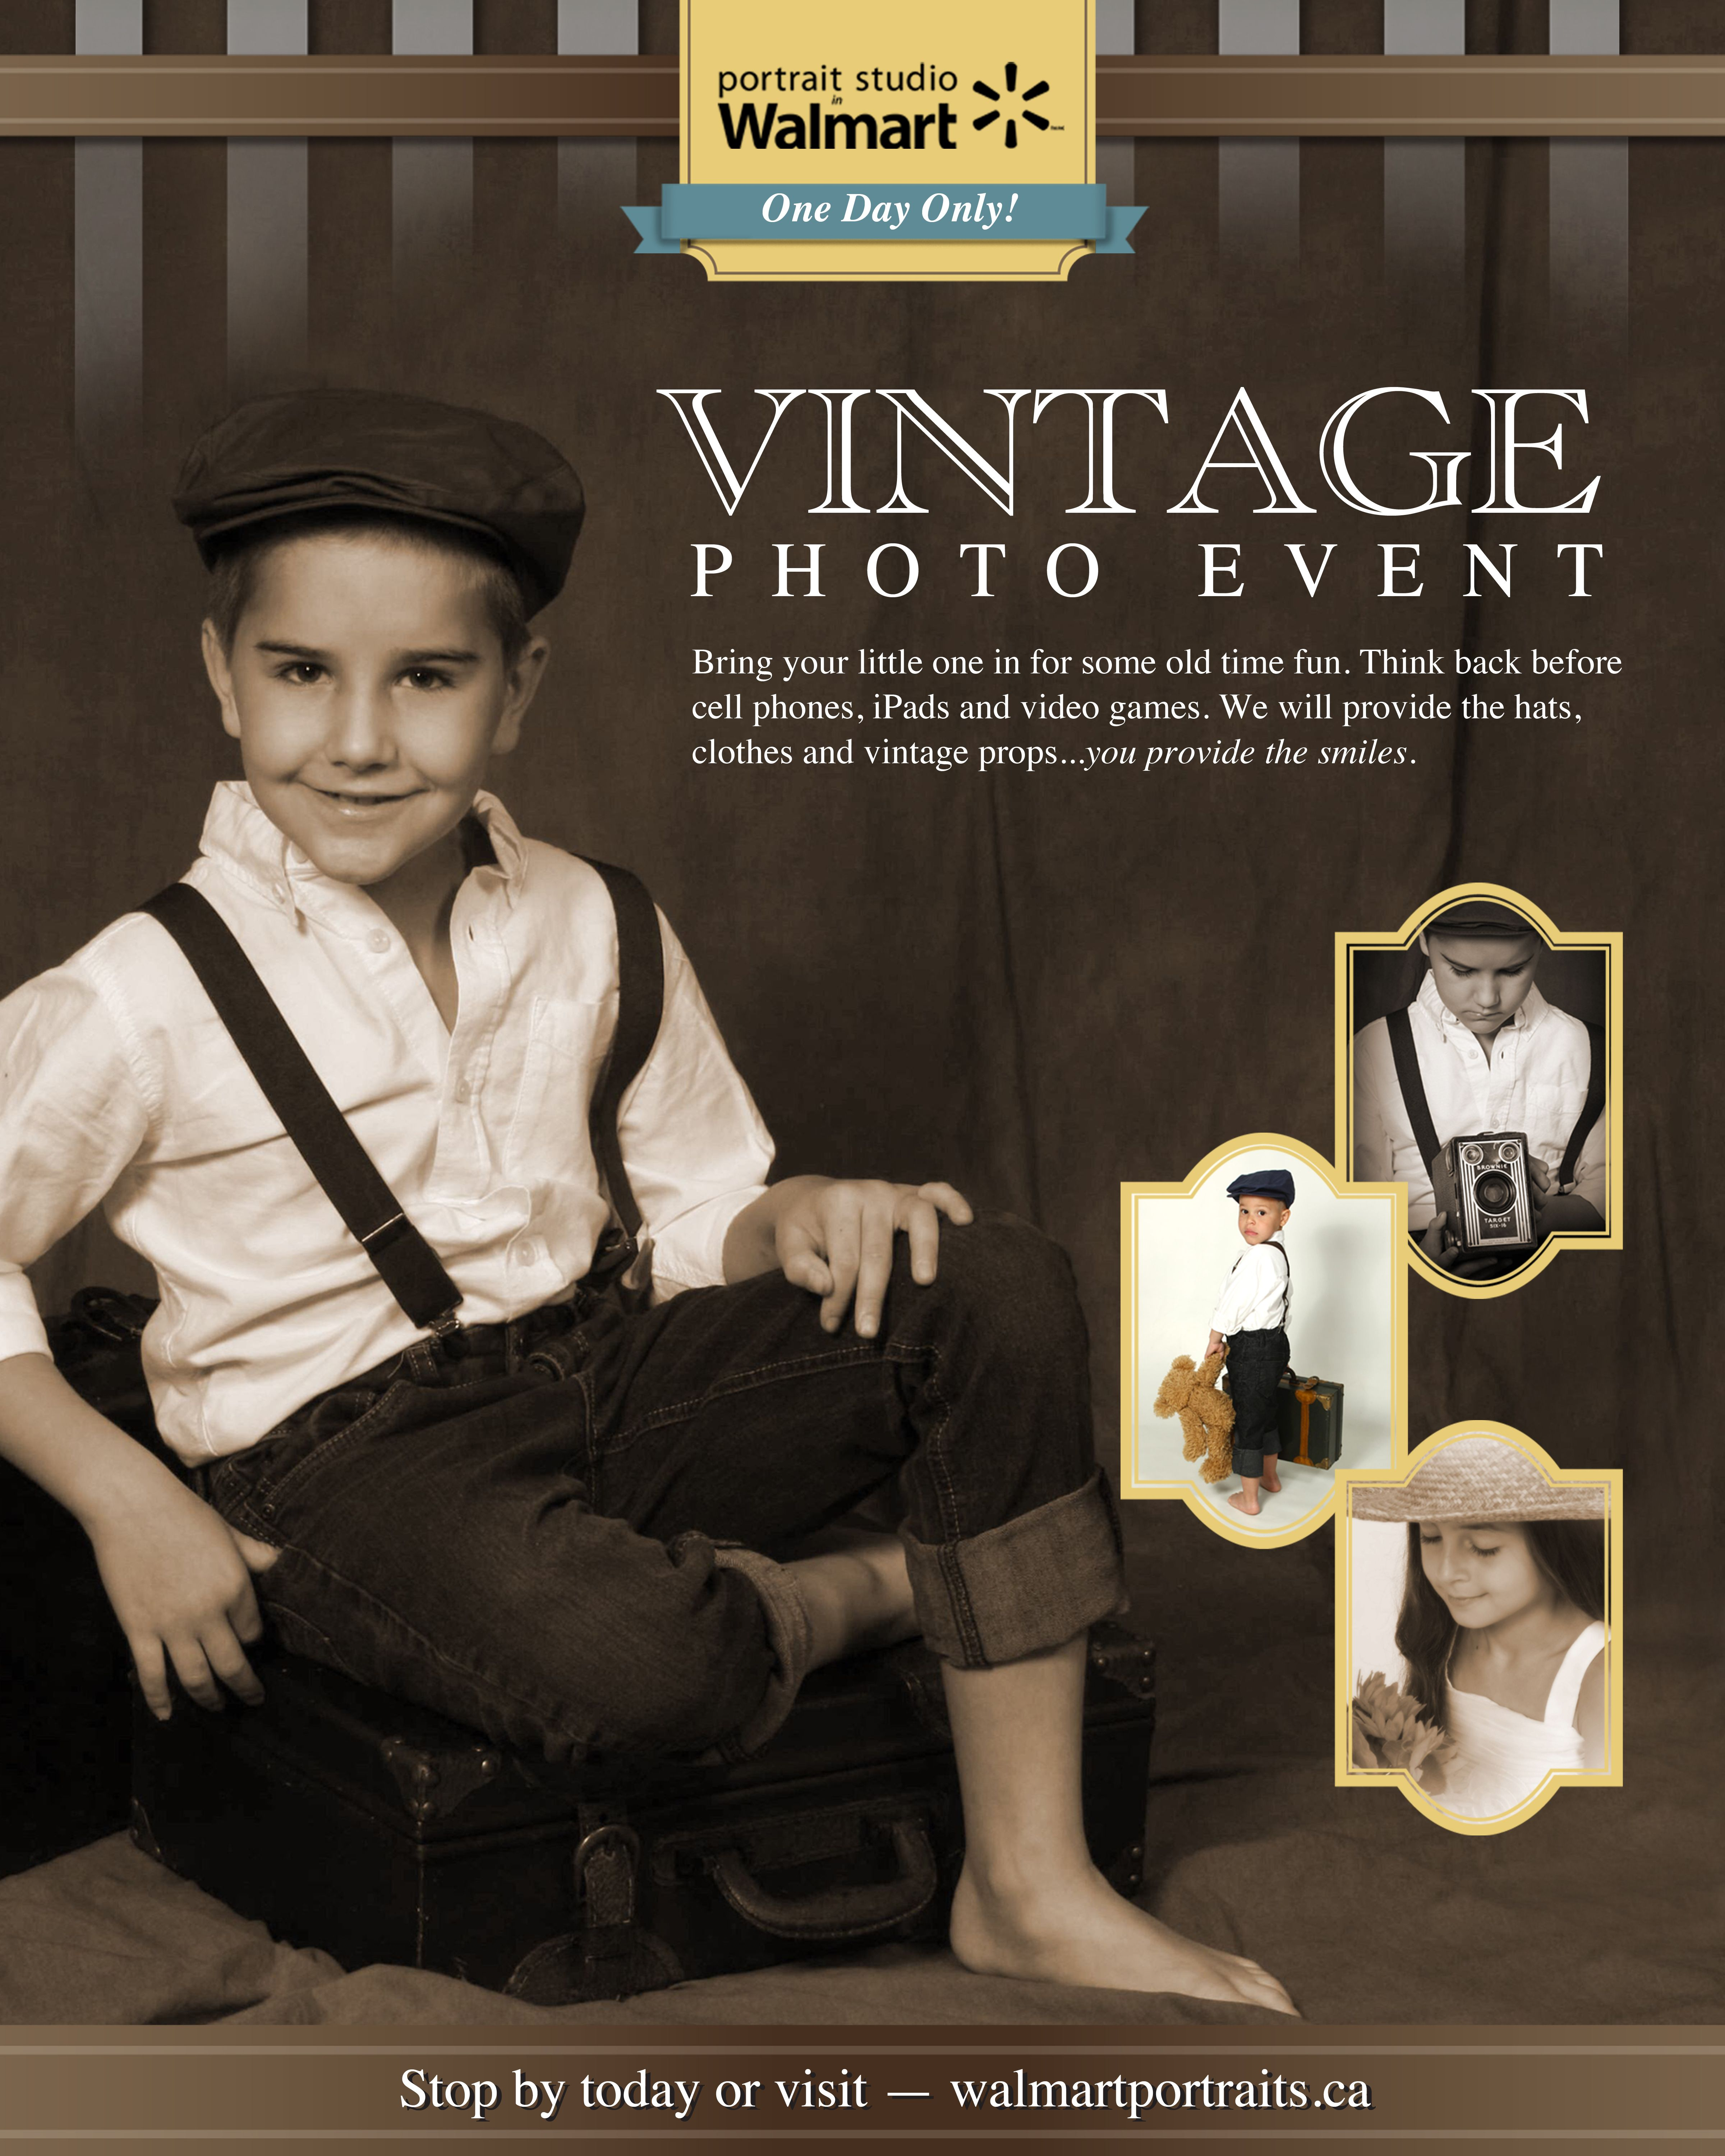 get amazing vintage photos at the walmart portrait studio reserve get amazing vintage photos at the walmart portrait studio reserve your spot today space